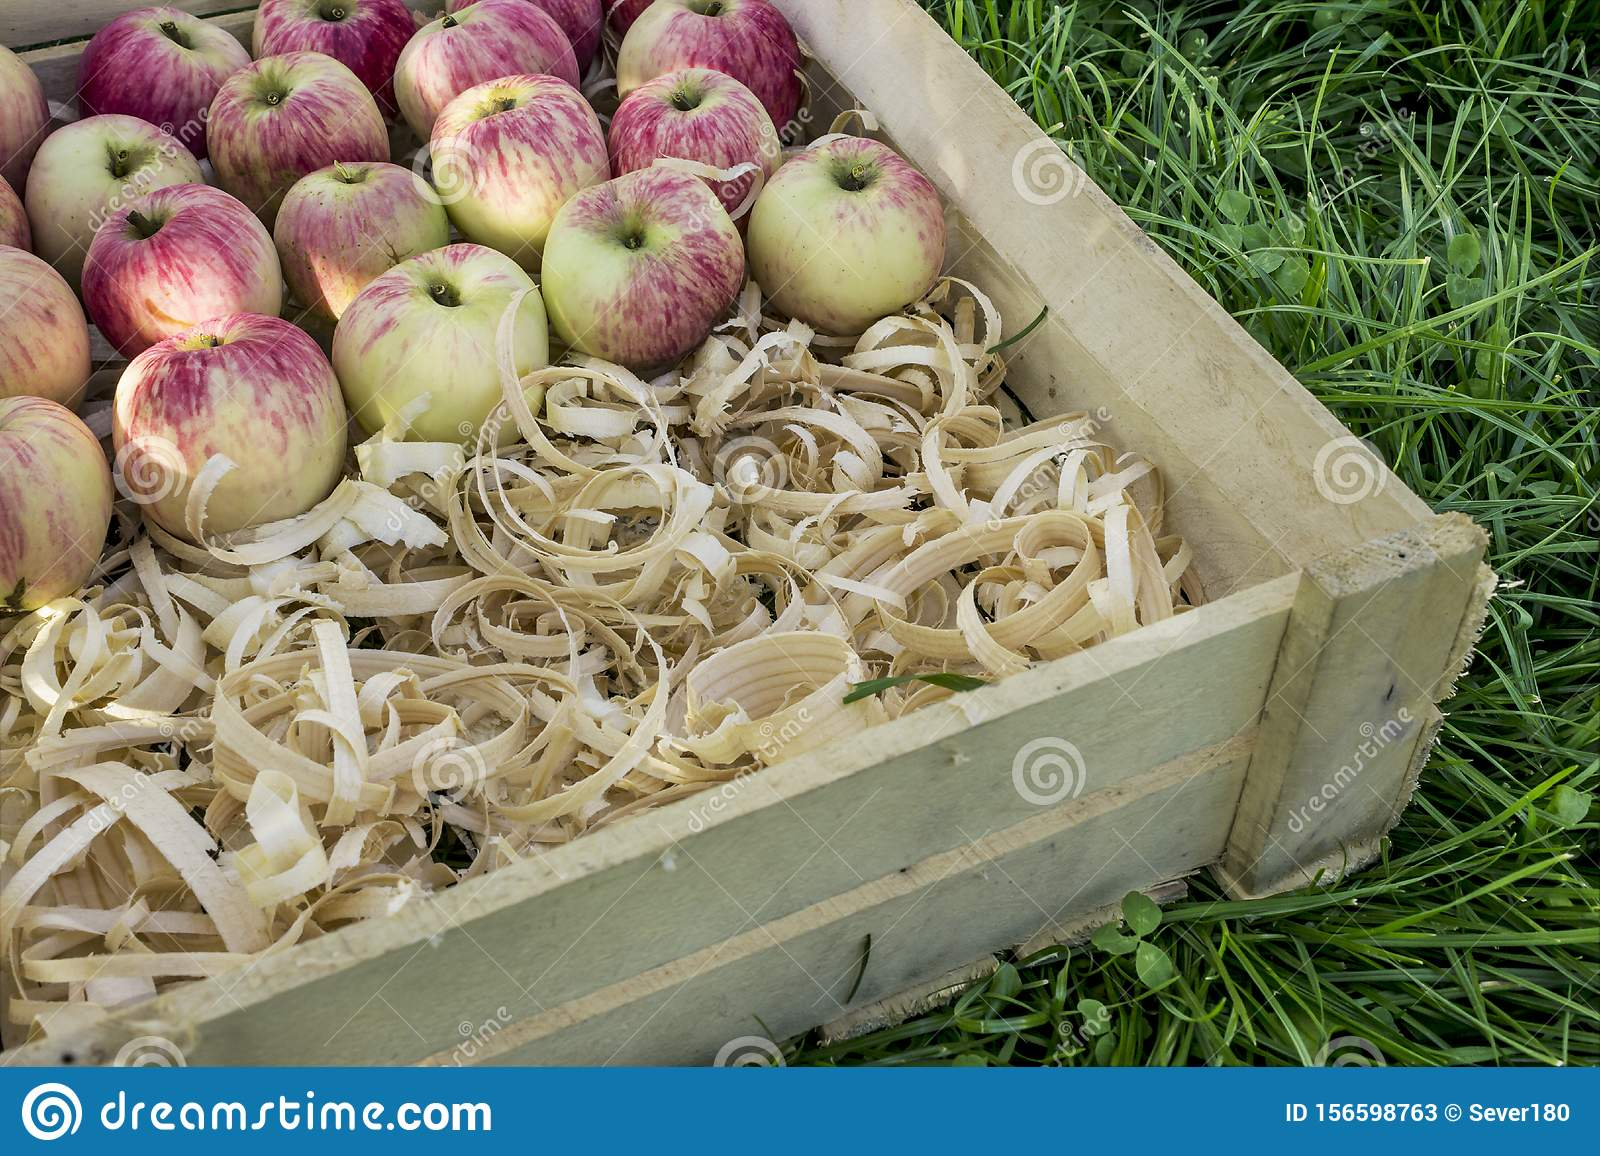 Rose ripe apples lie on shavings